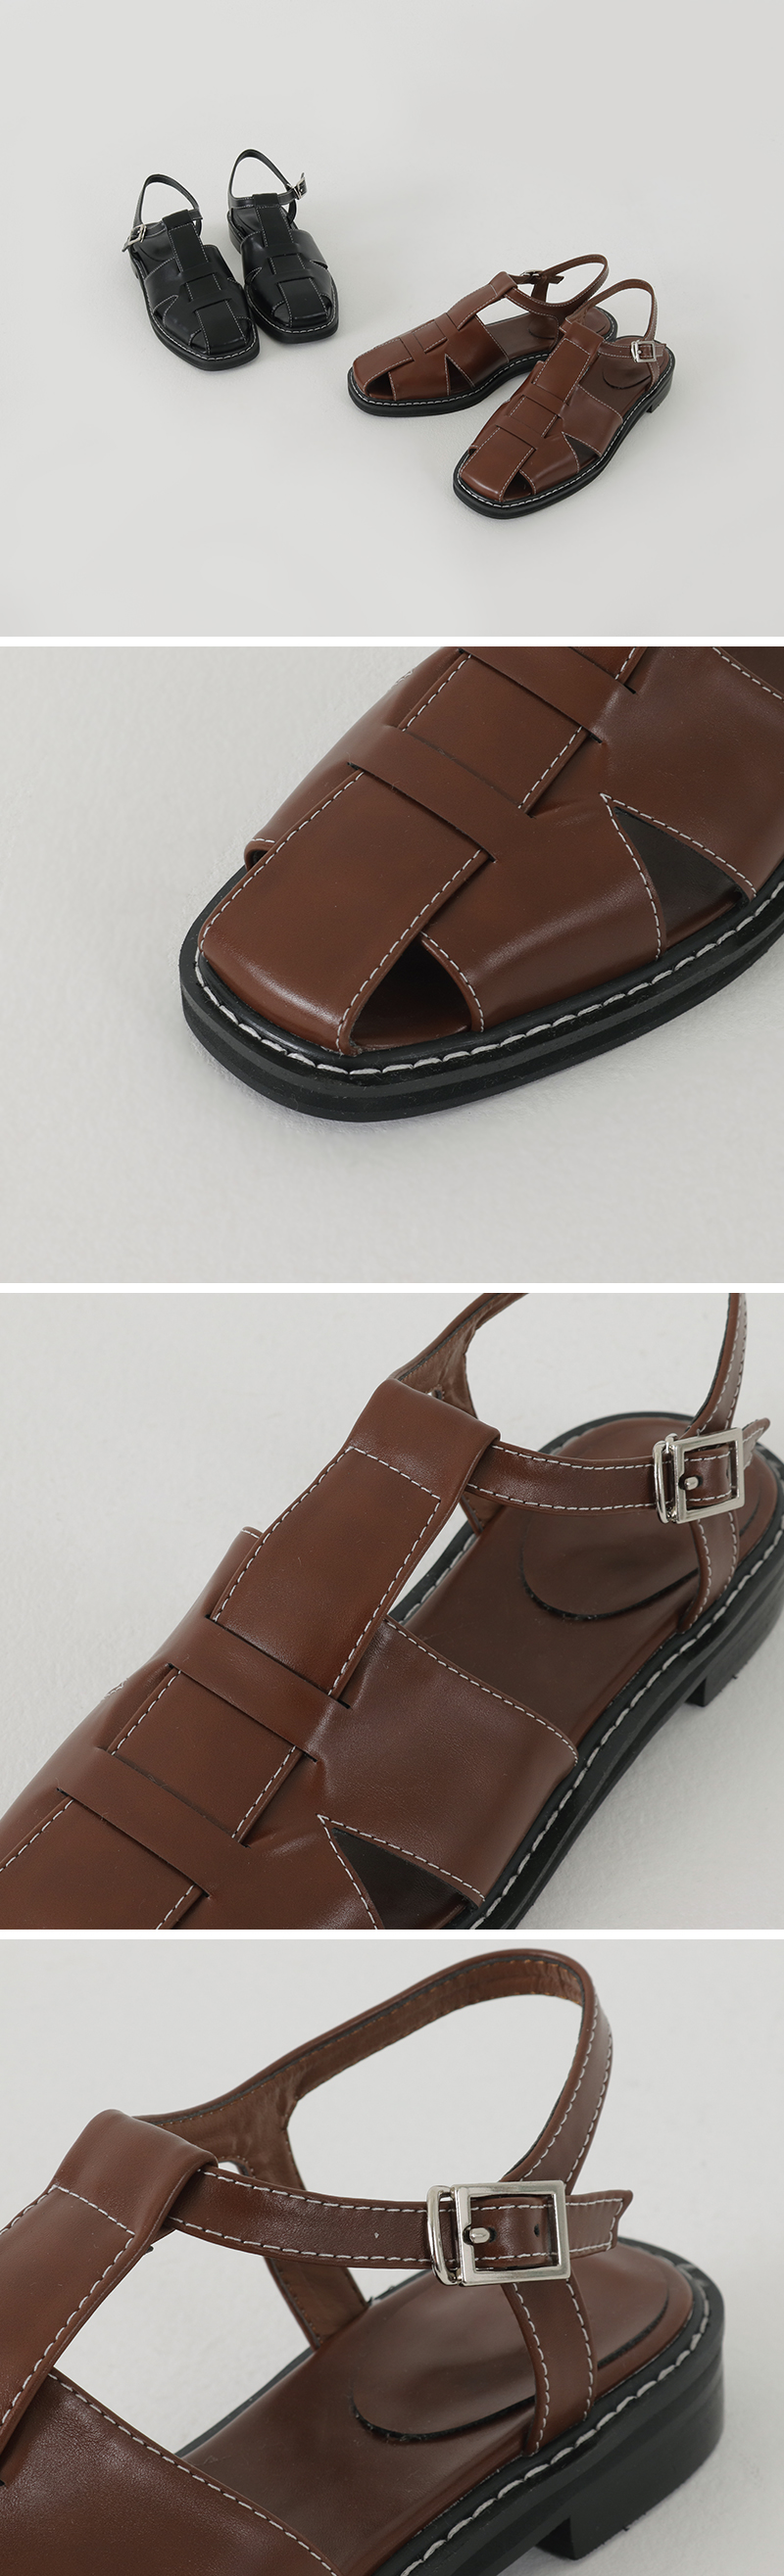 Stitched leather flat sandals